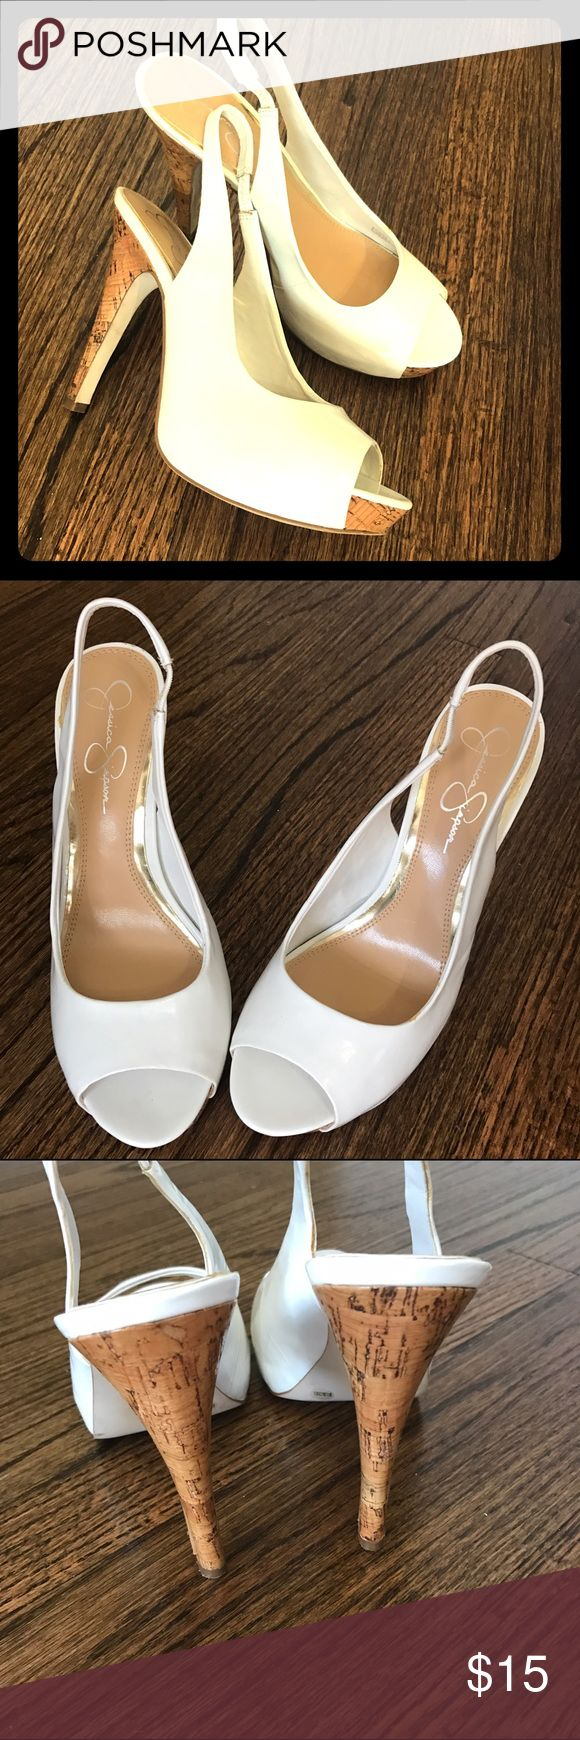 Jessica Simpson heels Beautiful shoes! They are in good used condition. I tried to show a lot of views. Minimal scuffs. Jessica Simpson Shoes Heels